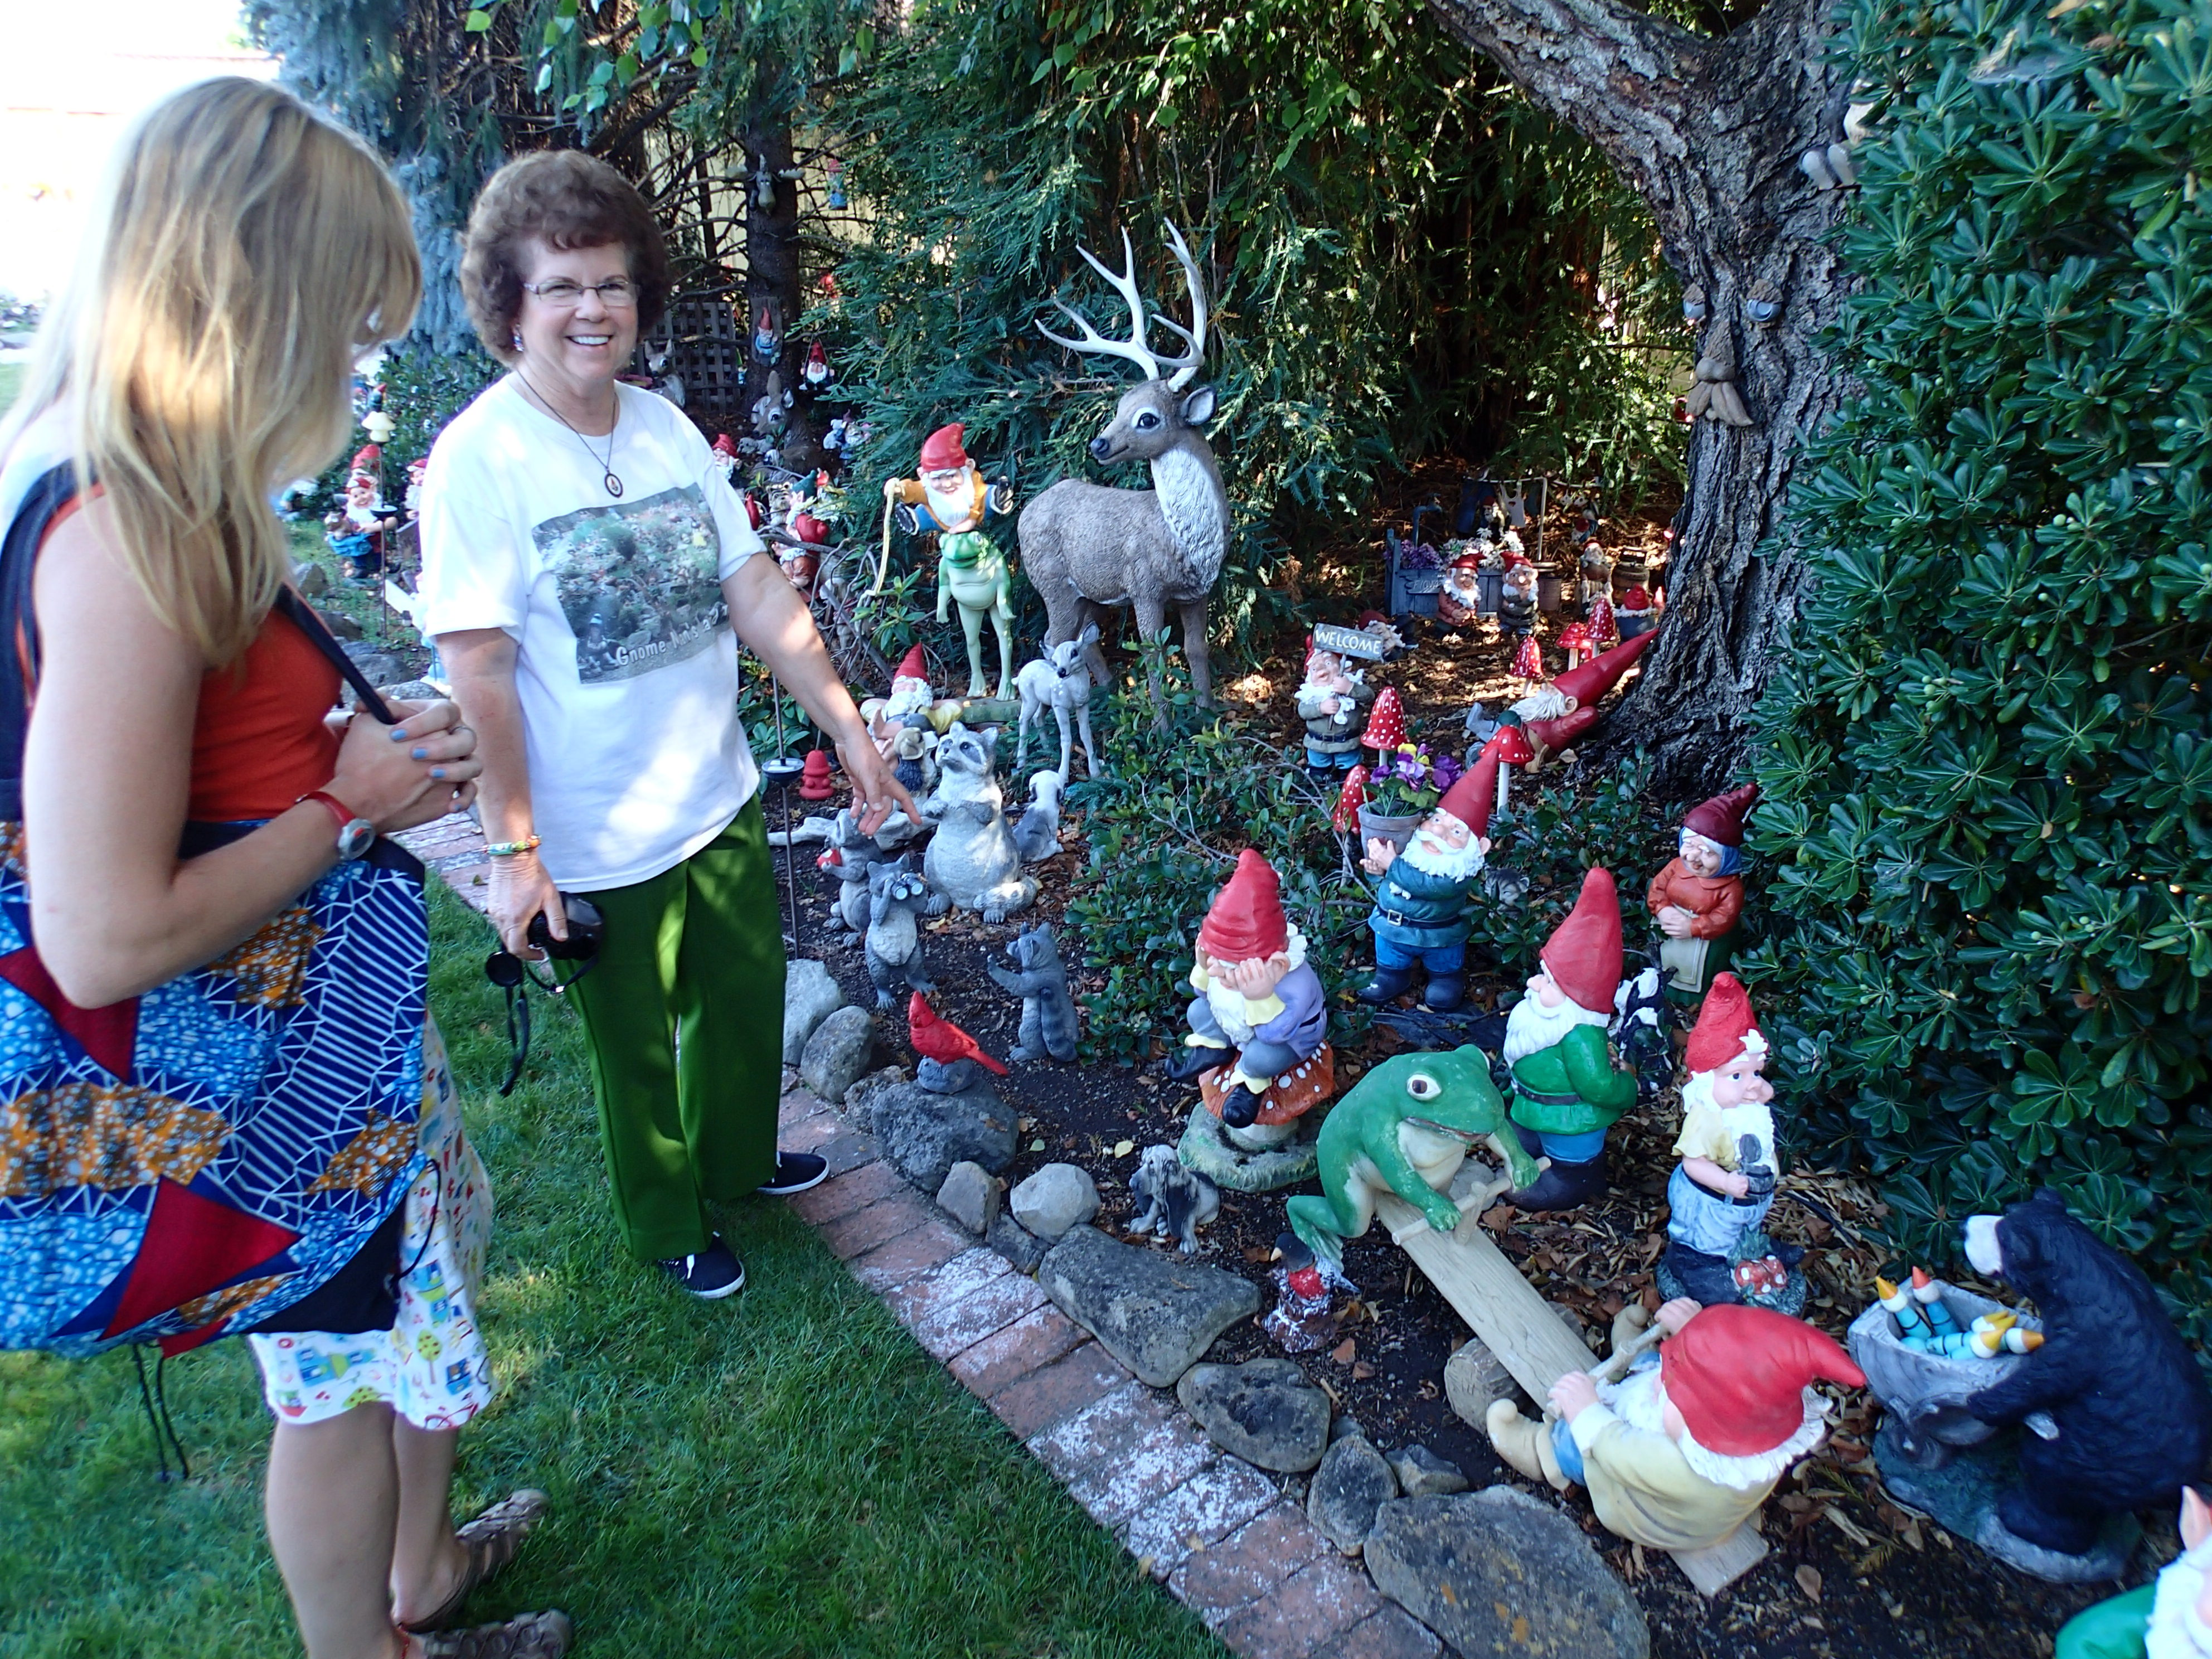 Gnome Man's Land: A California Fantasy Land 40 Years in the